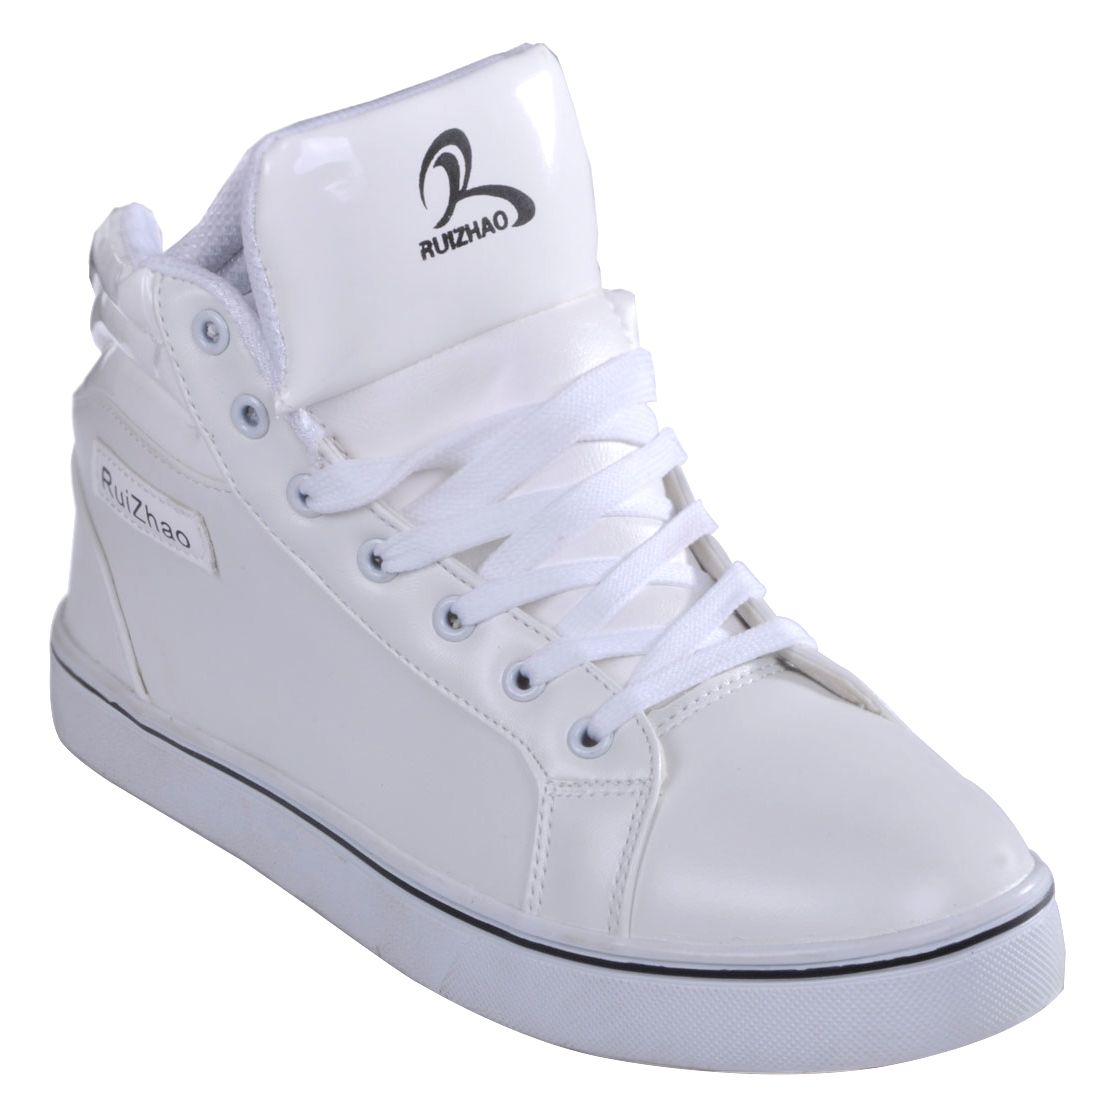 26 Awesome white casual sneakers men images